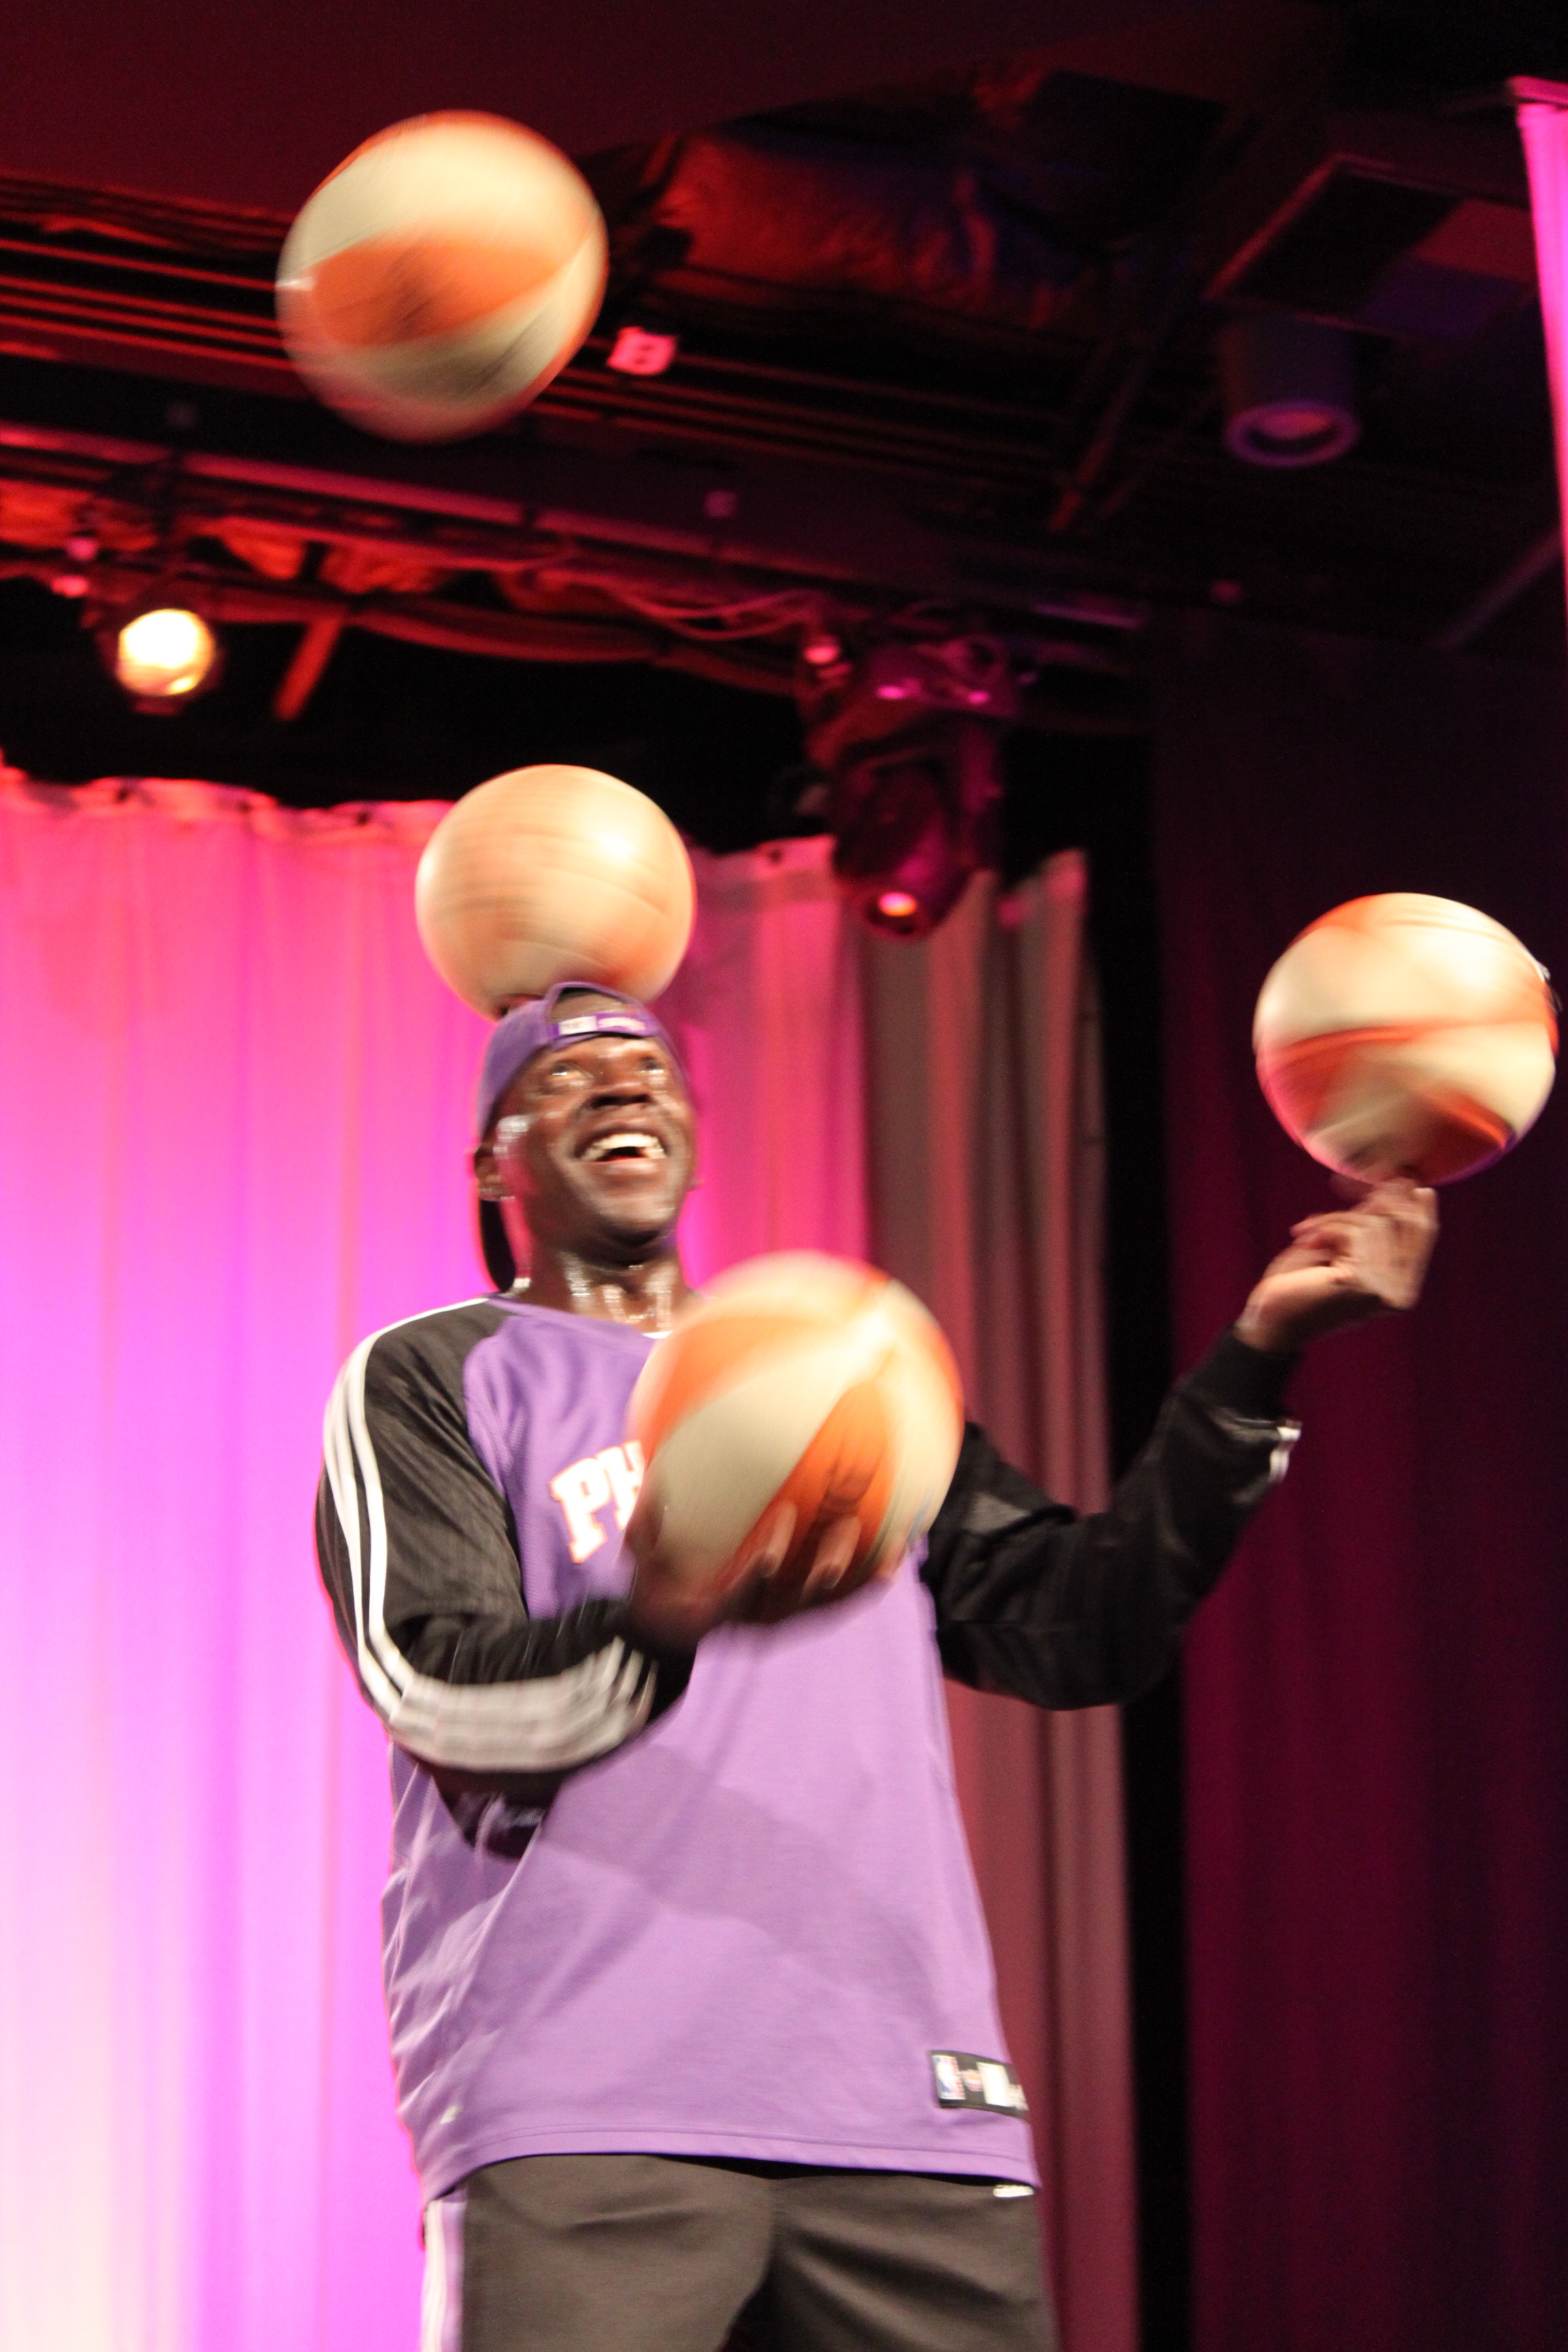 Odhiambo finger-spining, head-spining and juggling